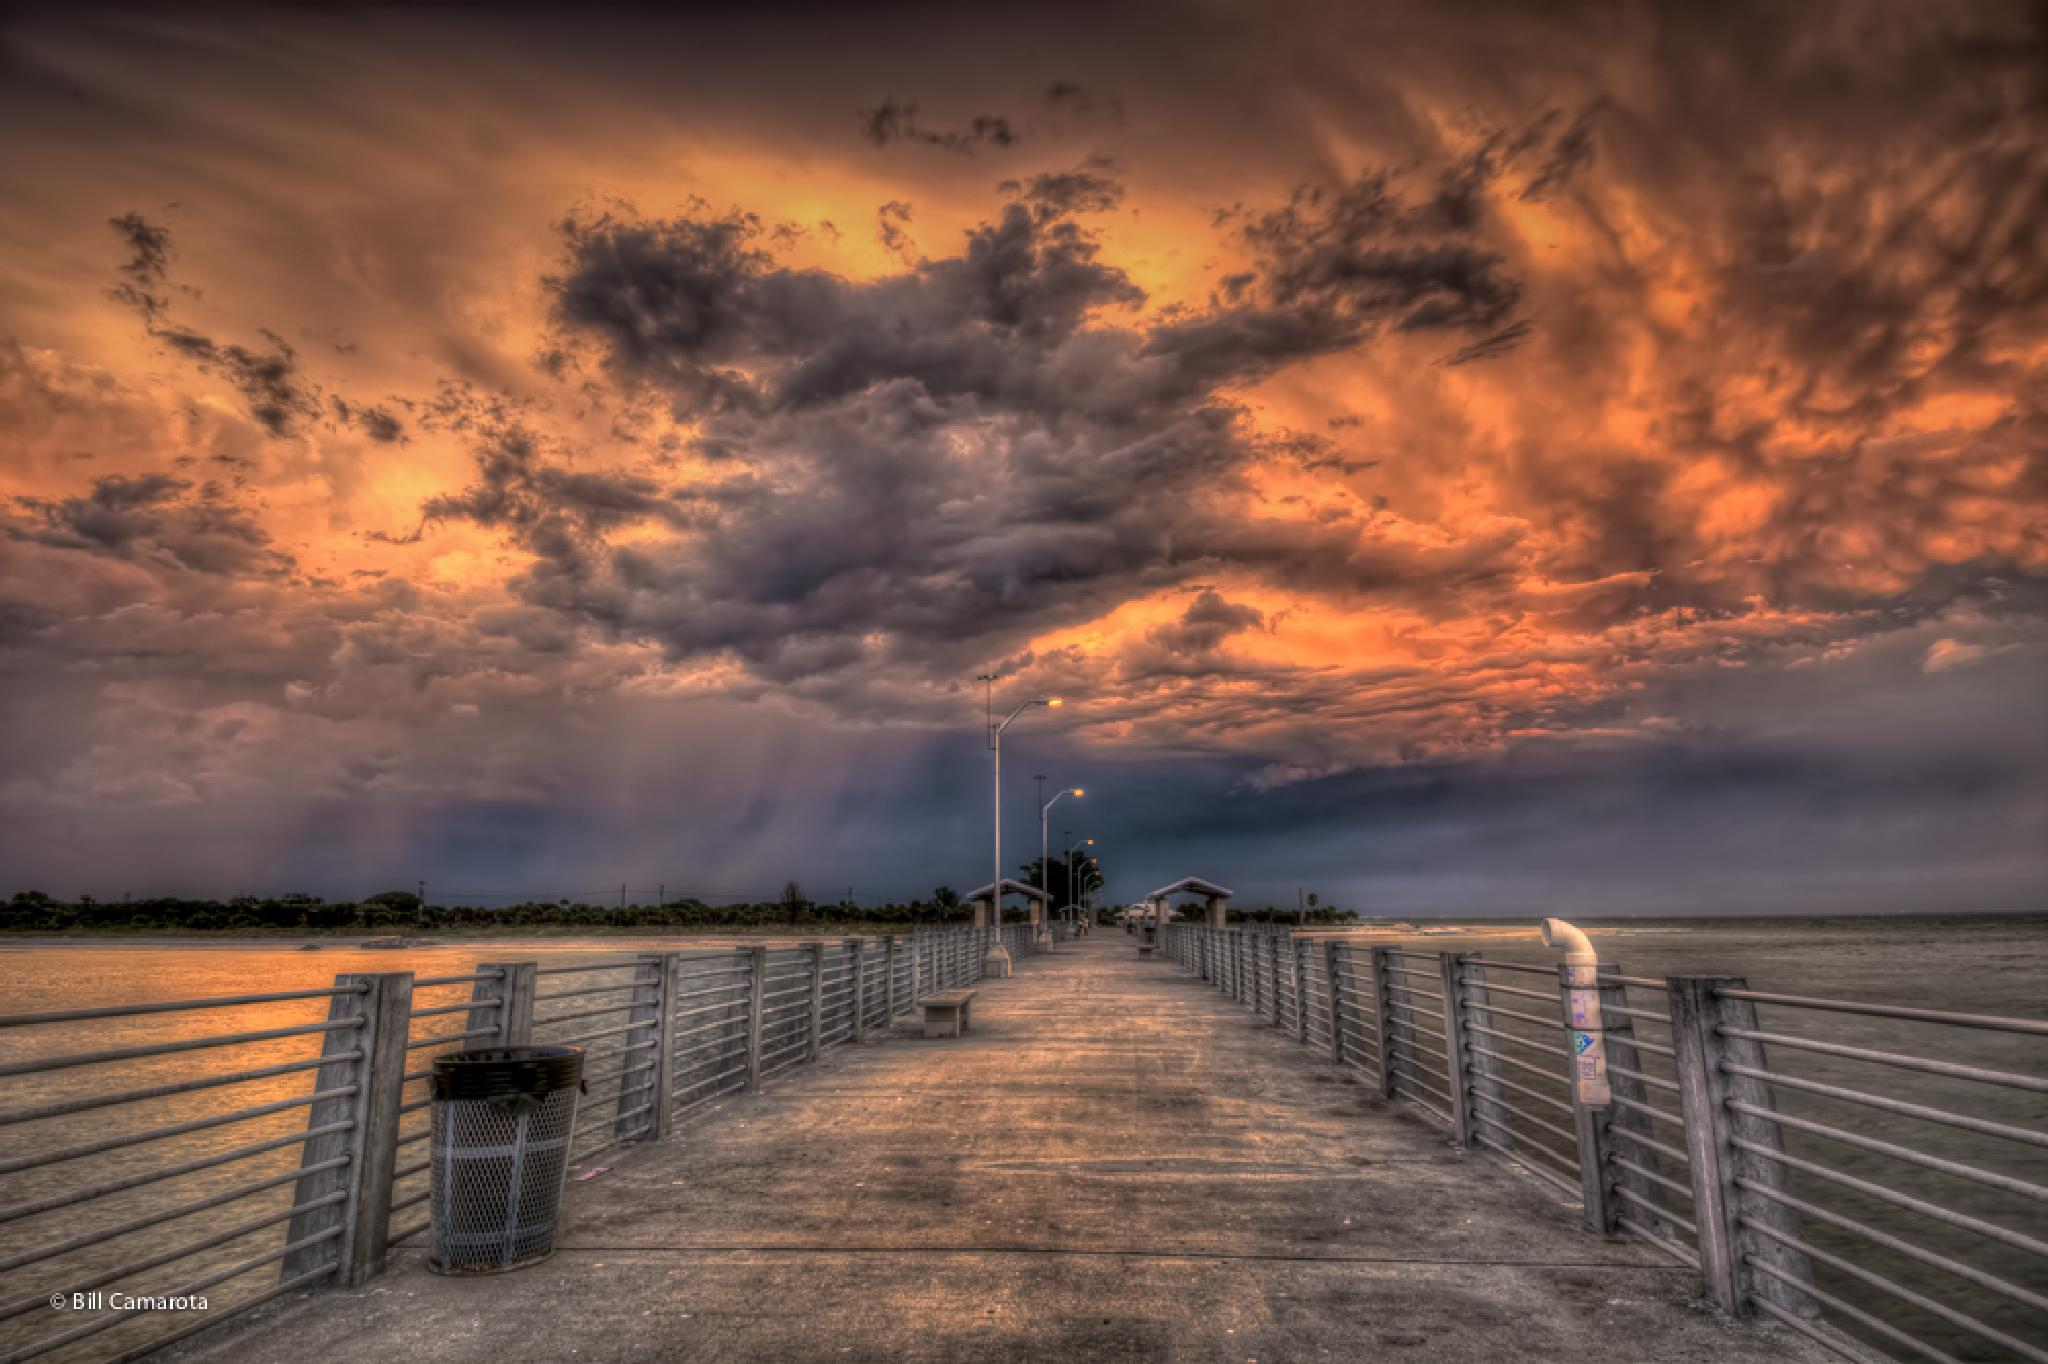 Angry Skies Over The Pier by bill.camarota